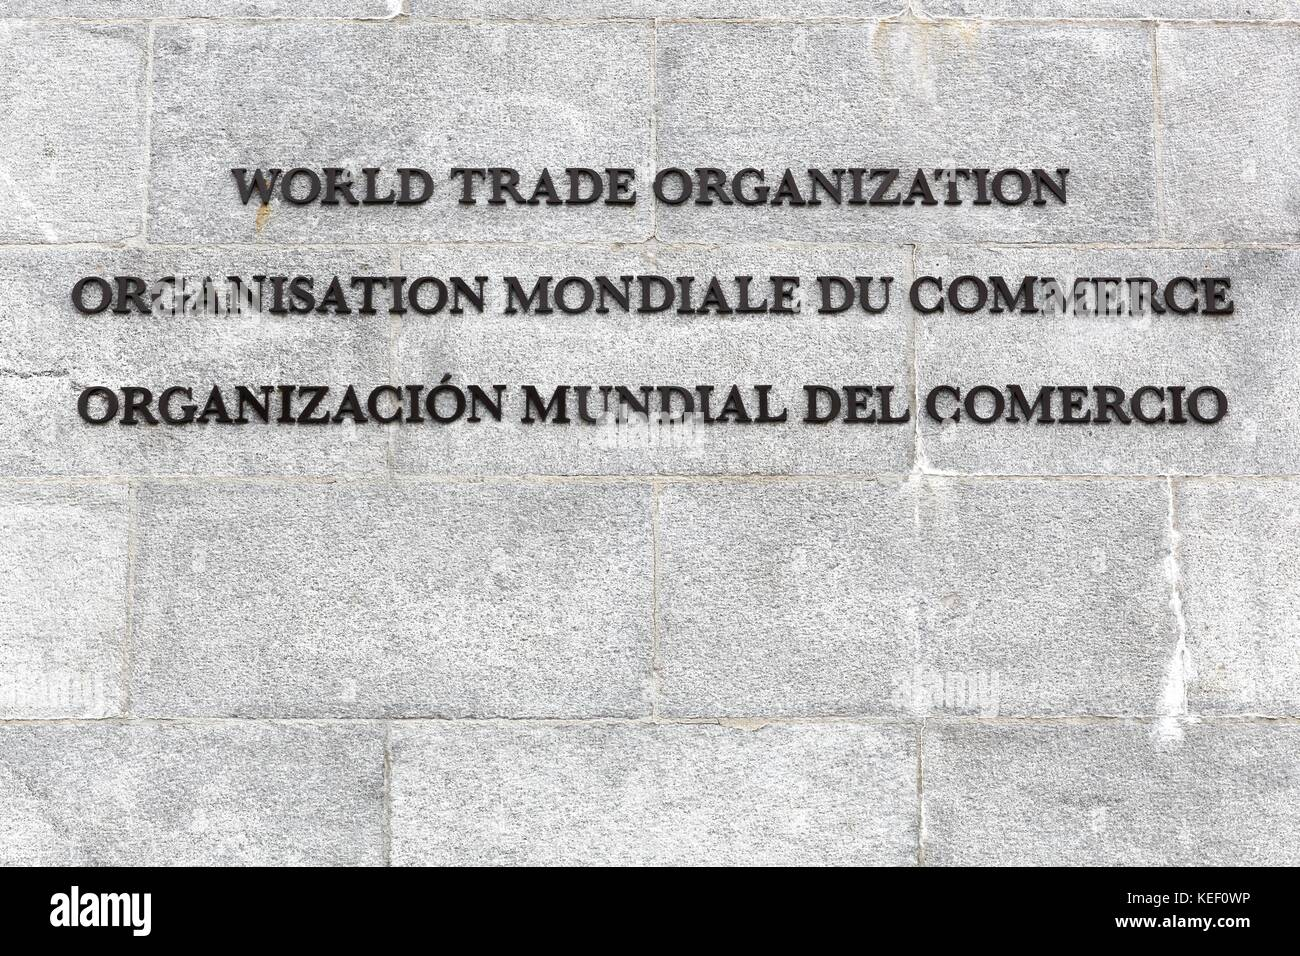 World Trade Organization inscription on a wall - Stock Image